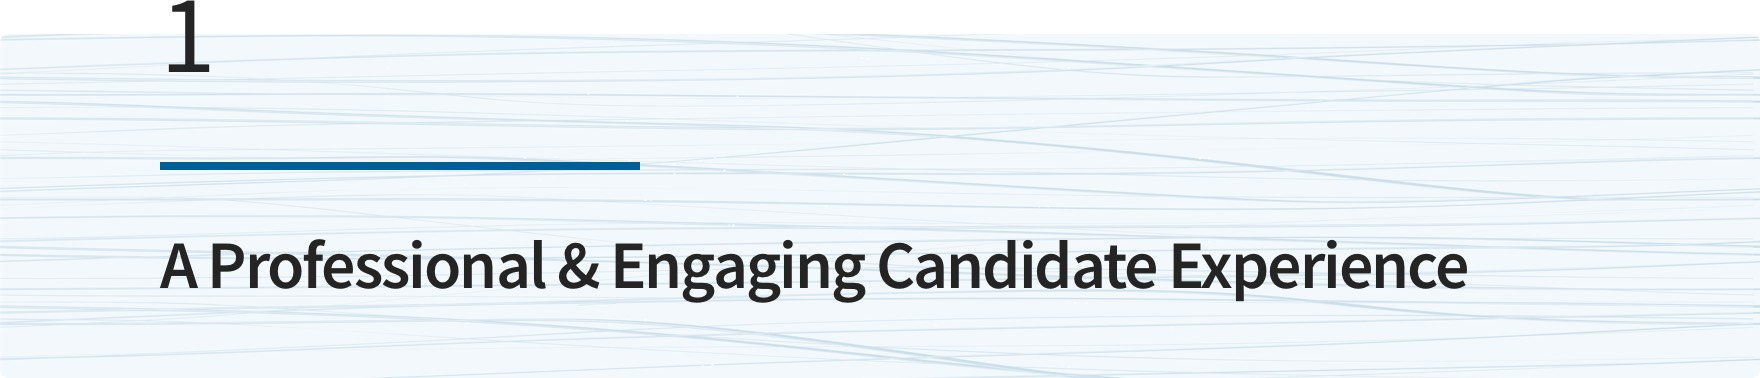 A Professional & Engaging Candidate Experience